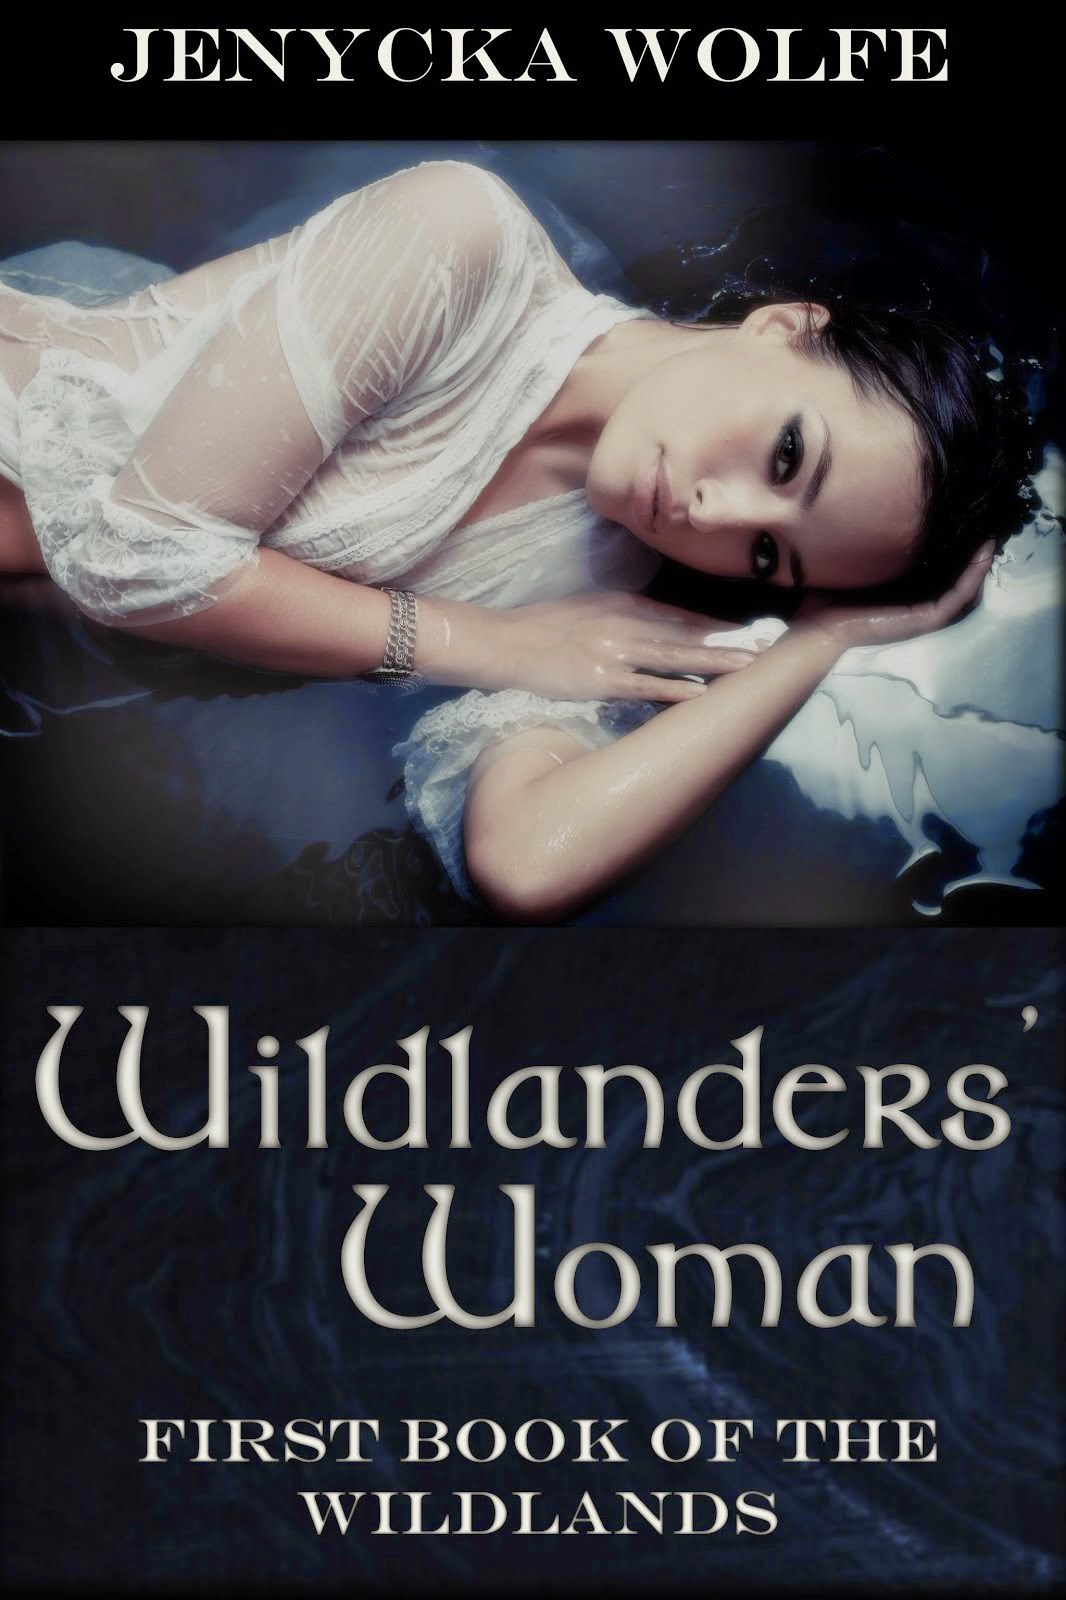 Wildlanders' Woman: First Book of the Wildlands